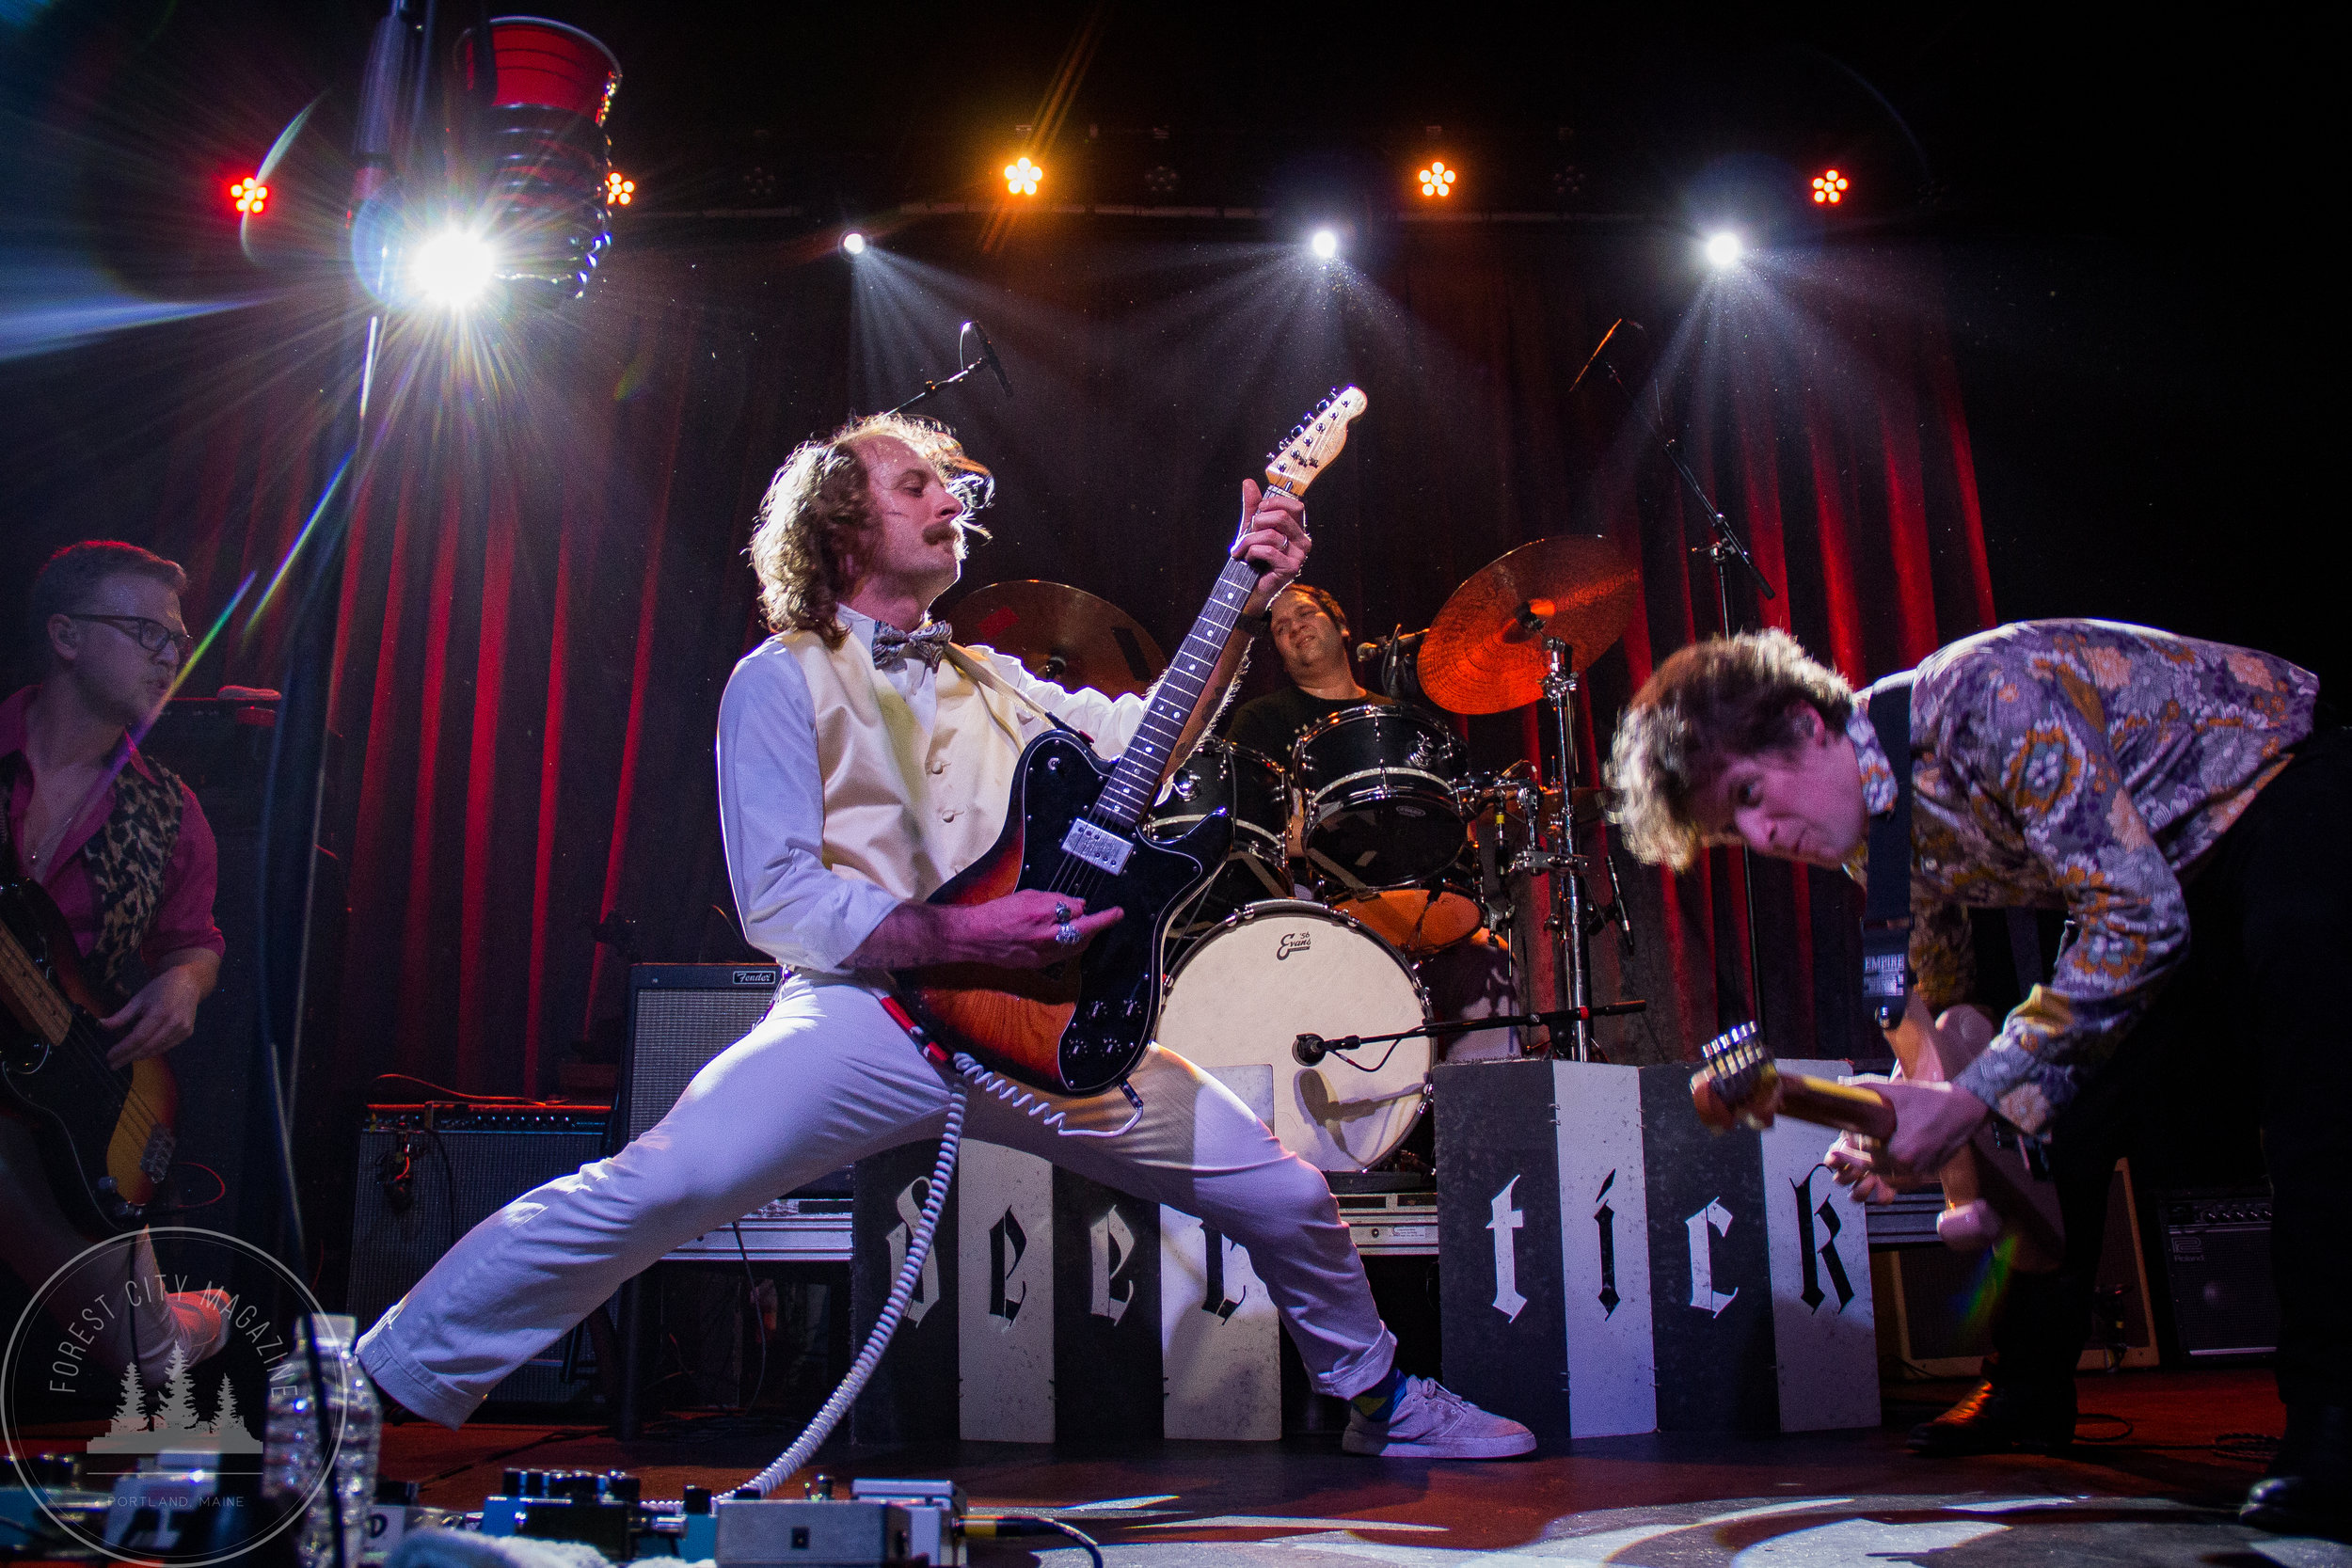 Deer Tick - Photos By: Kenneth Coles